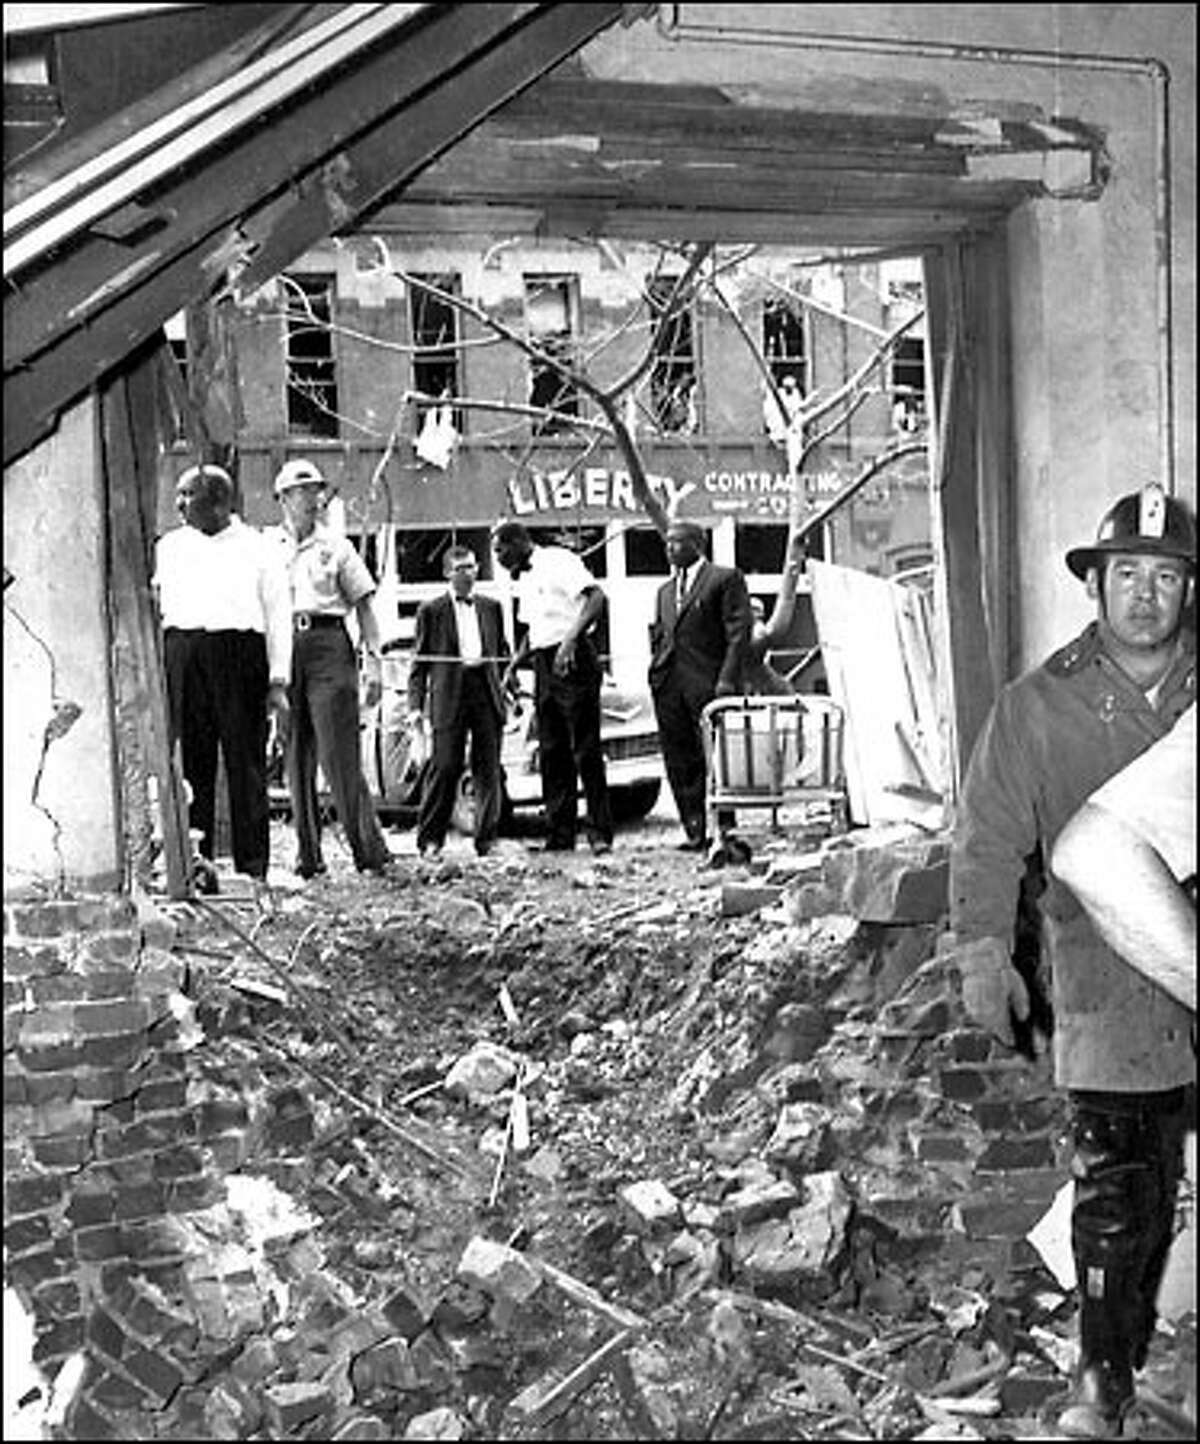 On Sept. 15, 1963, a bomb left this hole, and four dead girls, in the Sixteenth Street Baptist Church. Two men have now been convicted in the case.